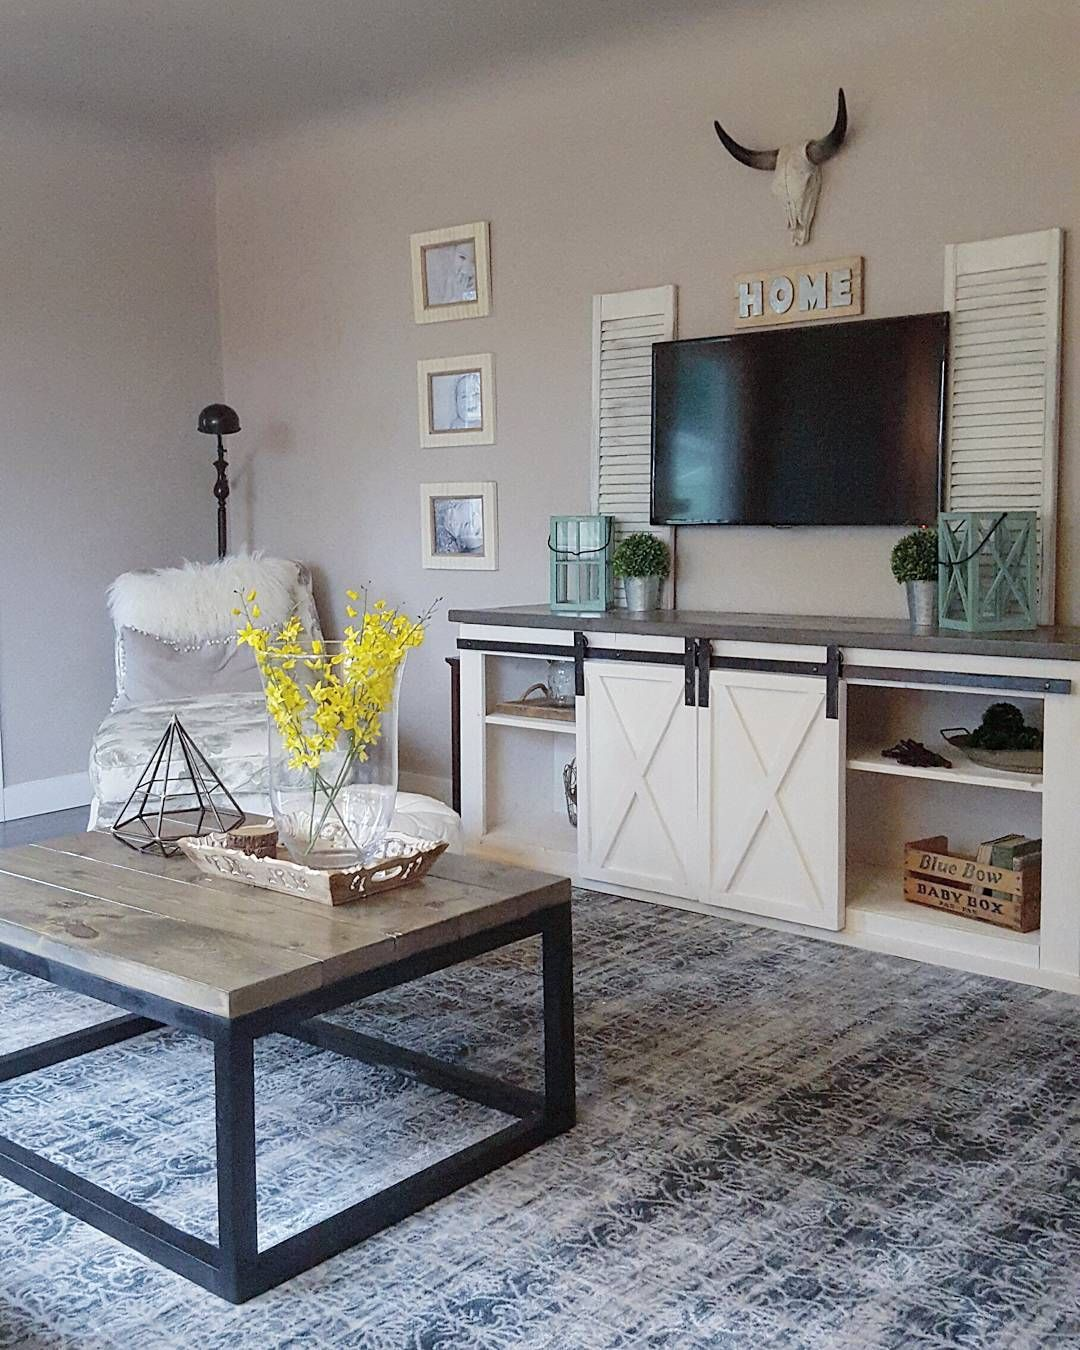 Farmhouse Industrial Country Living Room Diy Ana White